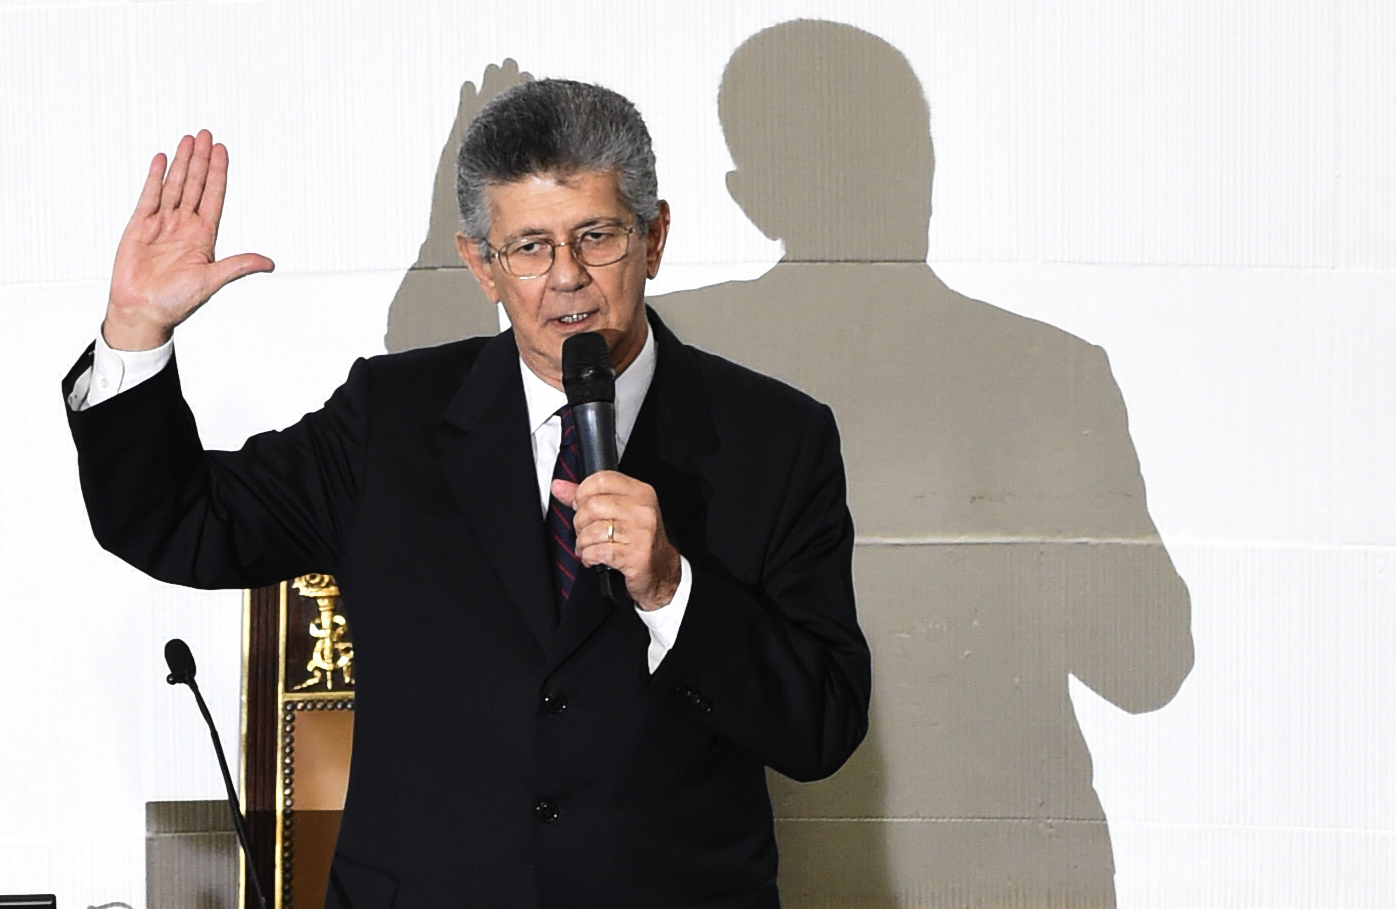 The new president of the Venezuelan parliament, Henry Ramos Allup raises his hand during the swearing-in ceremony in Caracas, on January 5, 2016.  Venezuela's President Nicolas Maduro ordered the security forces to ensure the swearing-in of a new opposition-dominated legislature passes off peacefully Tuesday, after calls for rallies raised fears of unrest. AFP PHOTO/JUAN BARRETO / AFP / JUAN BARRETO